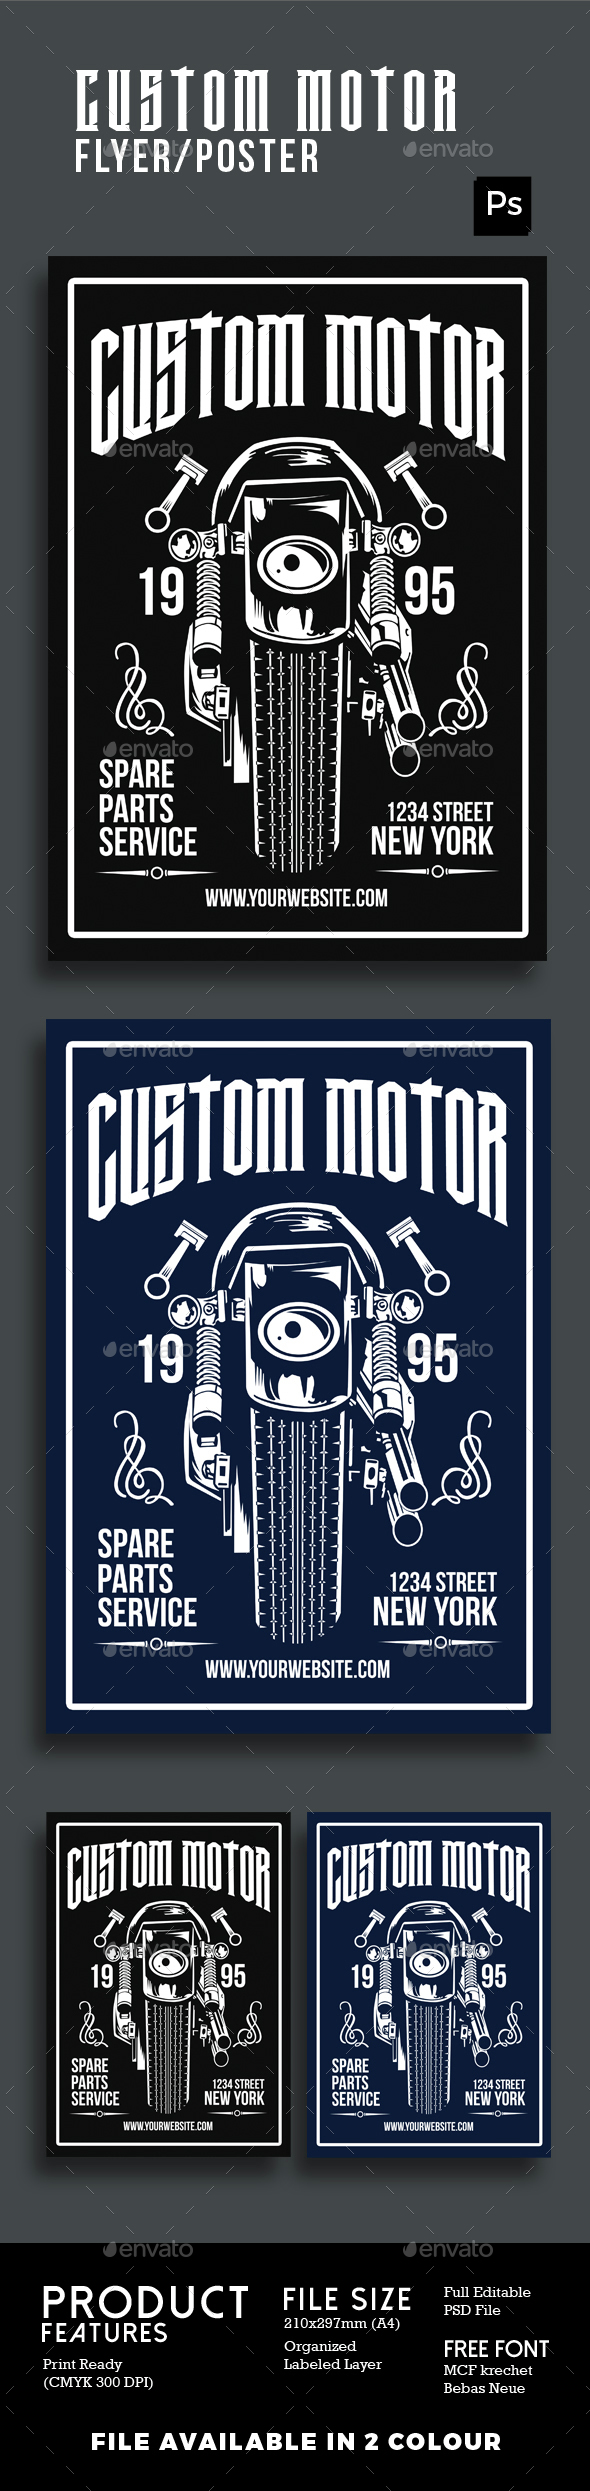 Custom Motor Poster Flyer - Flyers Print Templates